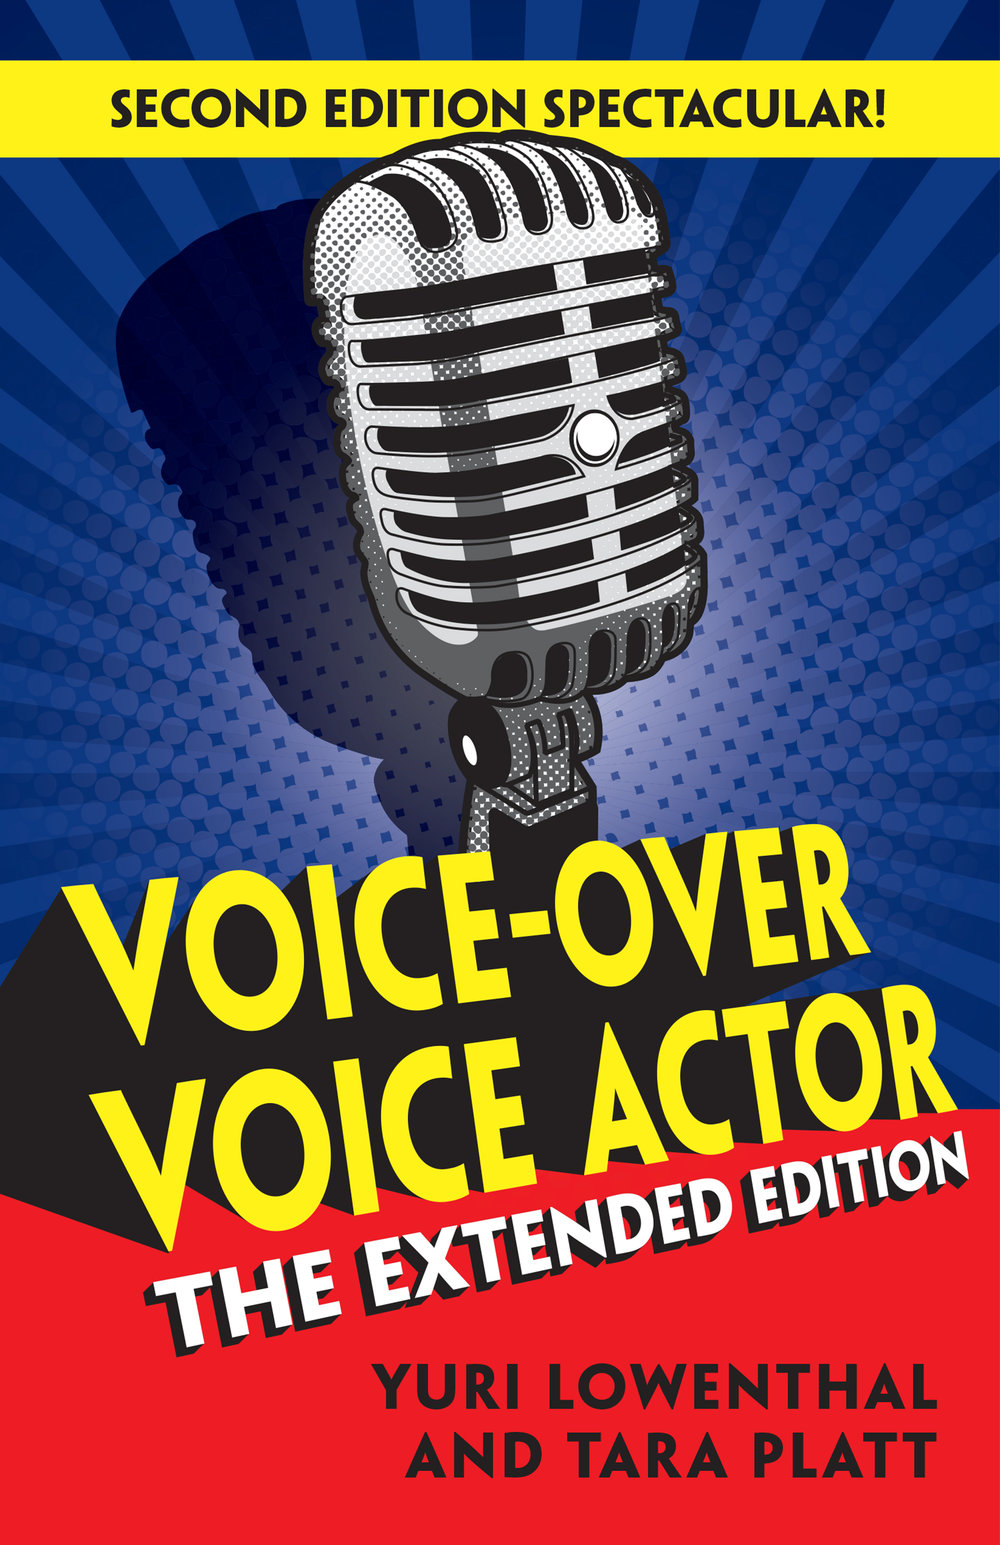 (Still) The coolest book on Voice-Over out there! - Packed with all the great information from the first edition but expanded to comprise even more details and additional new material including:• The ins and outs of auditioning• Vocal warm-ups and exercises• Tips for reading copy to maximum effect• Hints to help you stand out• Advice for setting up your own home studio• Keys to marketing yourself: demo > agent > job• What to expect when you book the job• A bonus workbook to hone your skills• Performance capture, podcasting, & more!